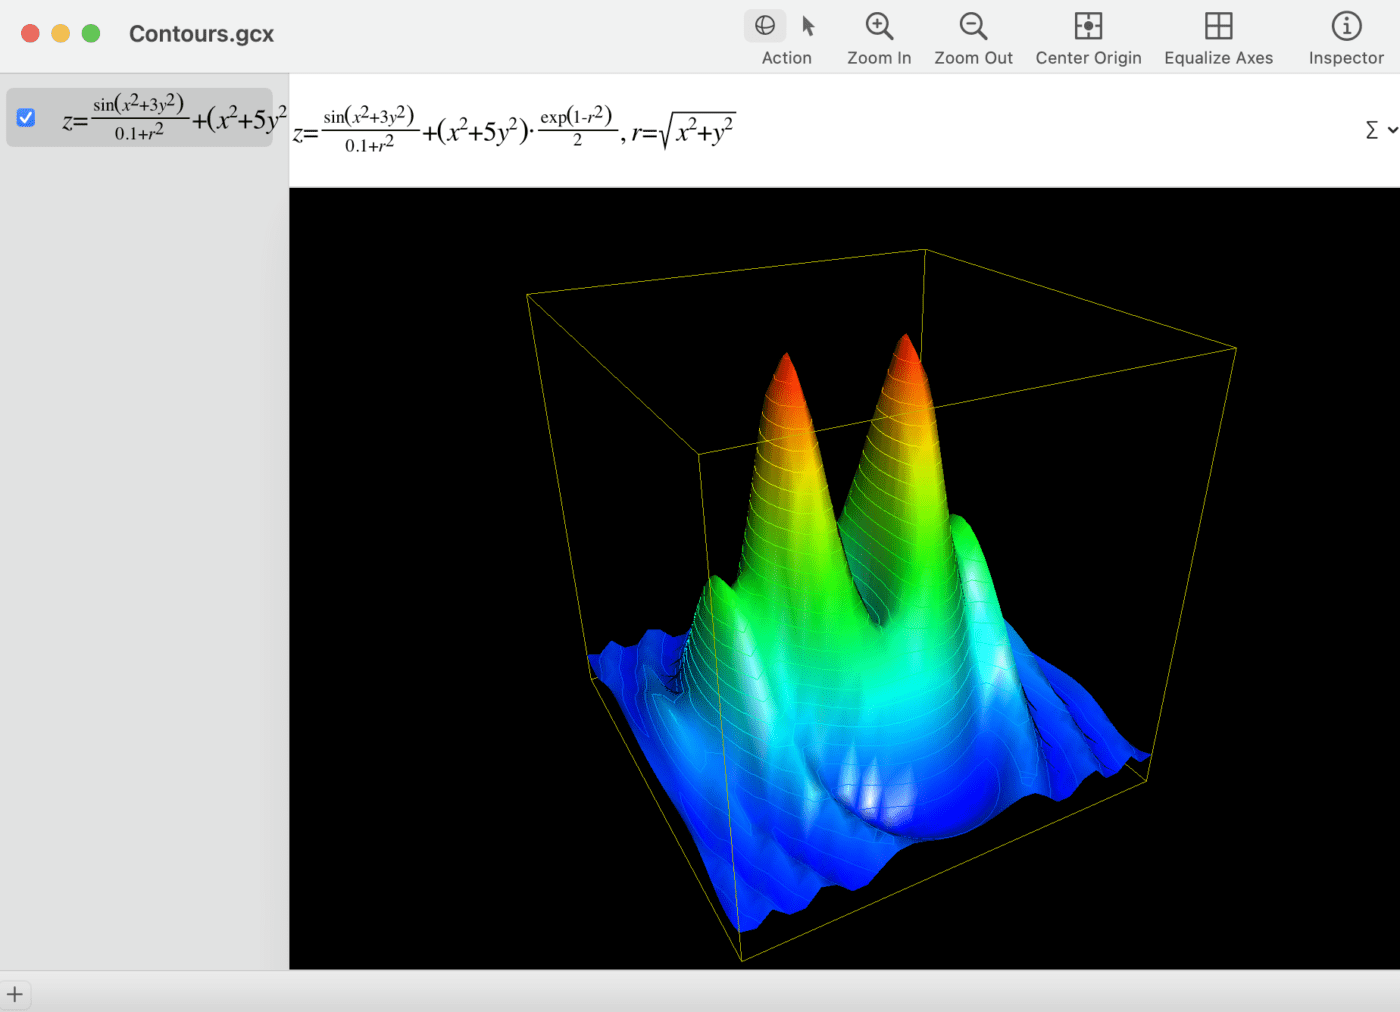 The animated contours example in Grapher is fascinating, and can be manually rotated as well